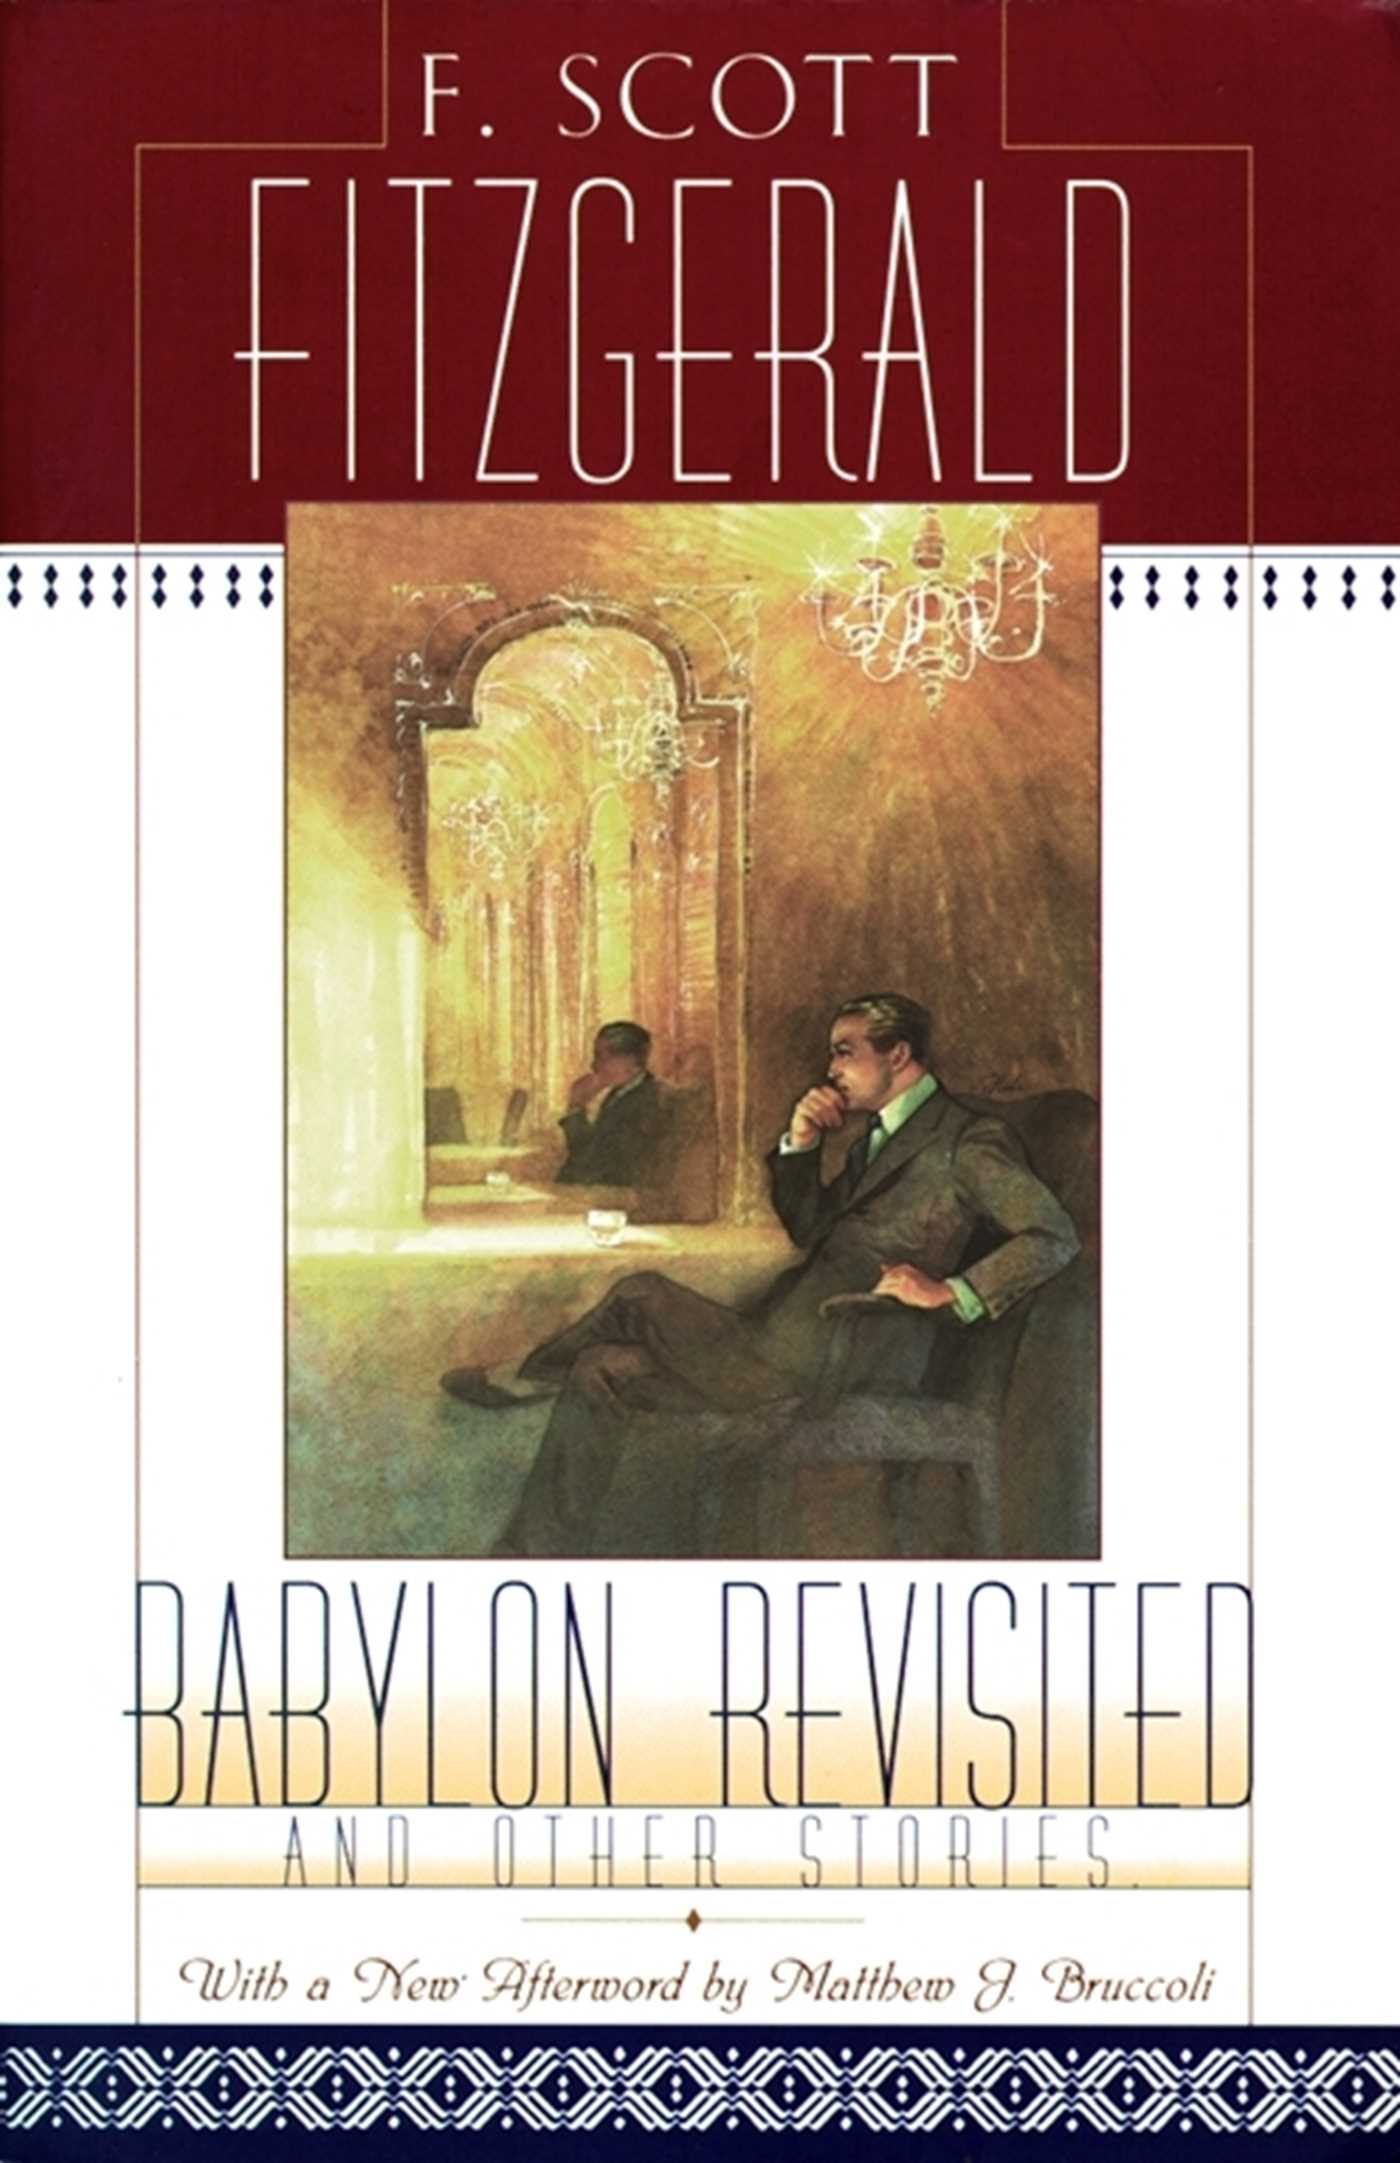 The life of the author in babylon revisited a short story by f scott fitzgerald